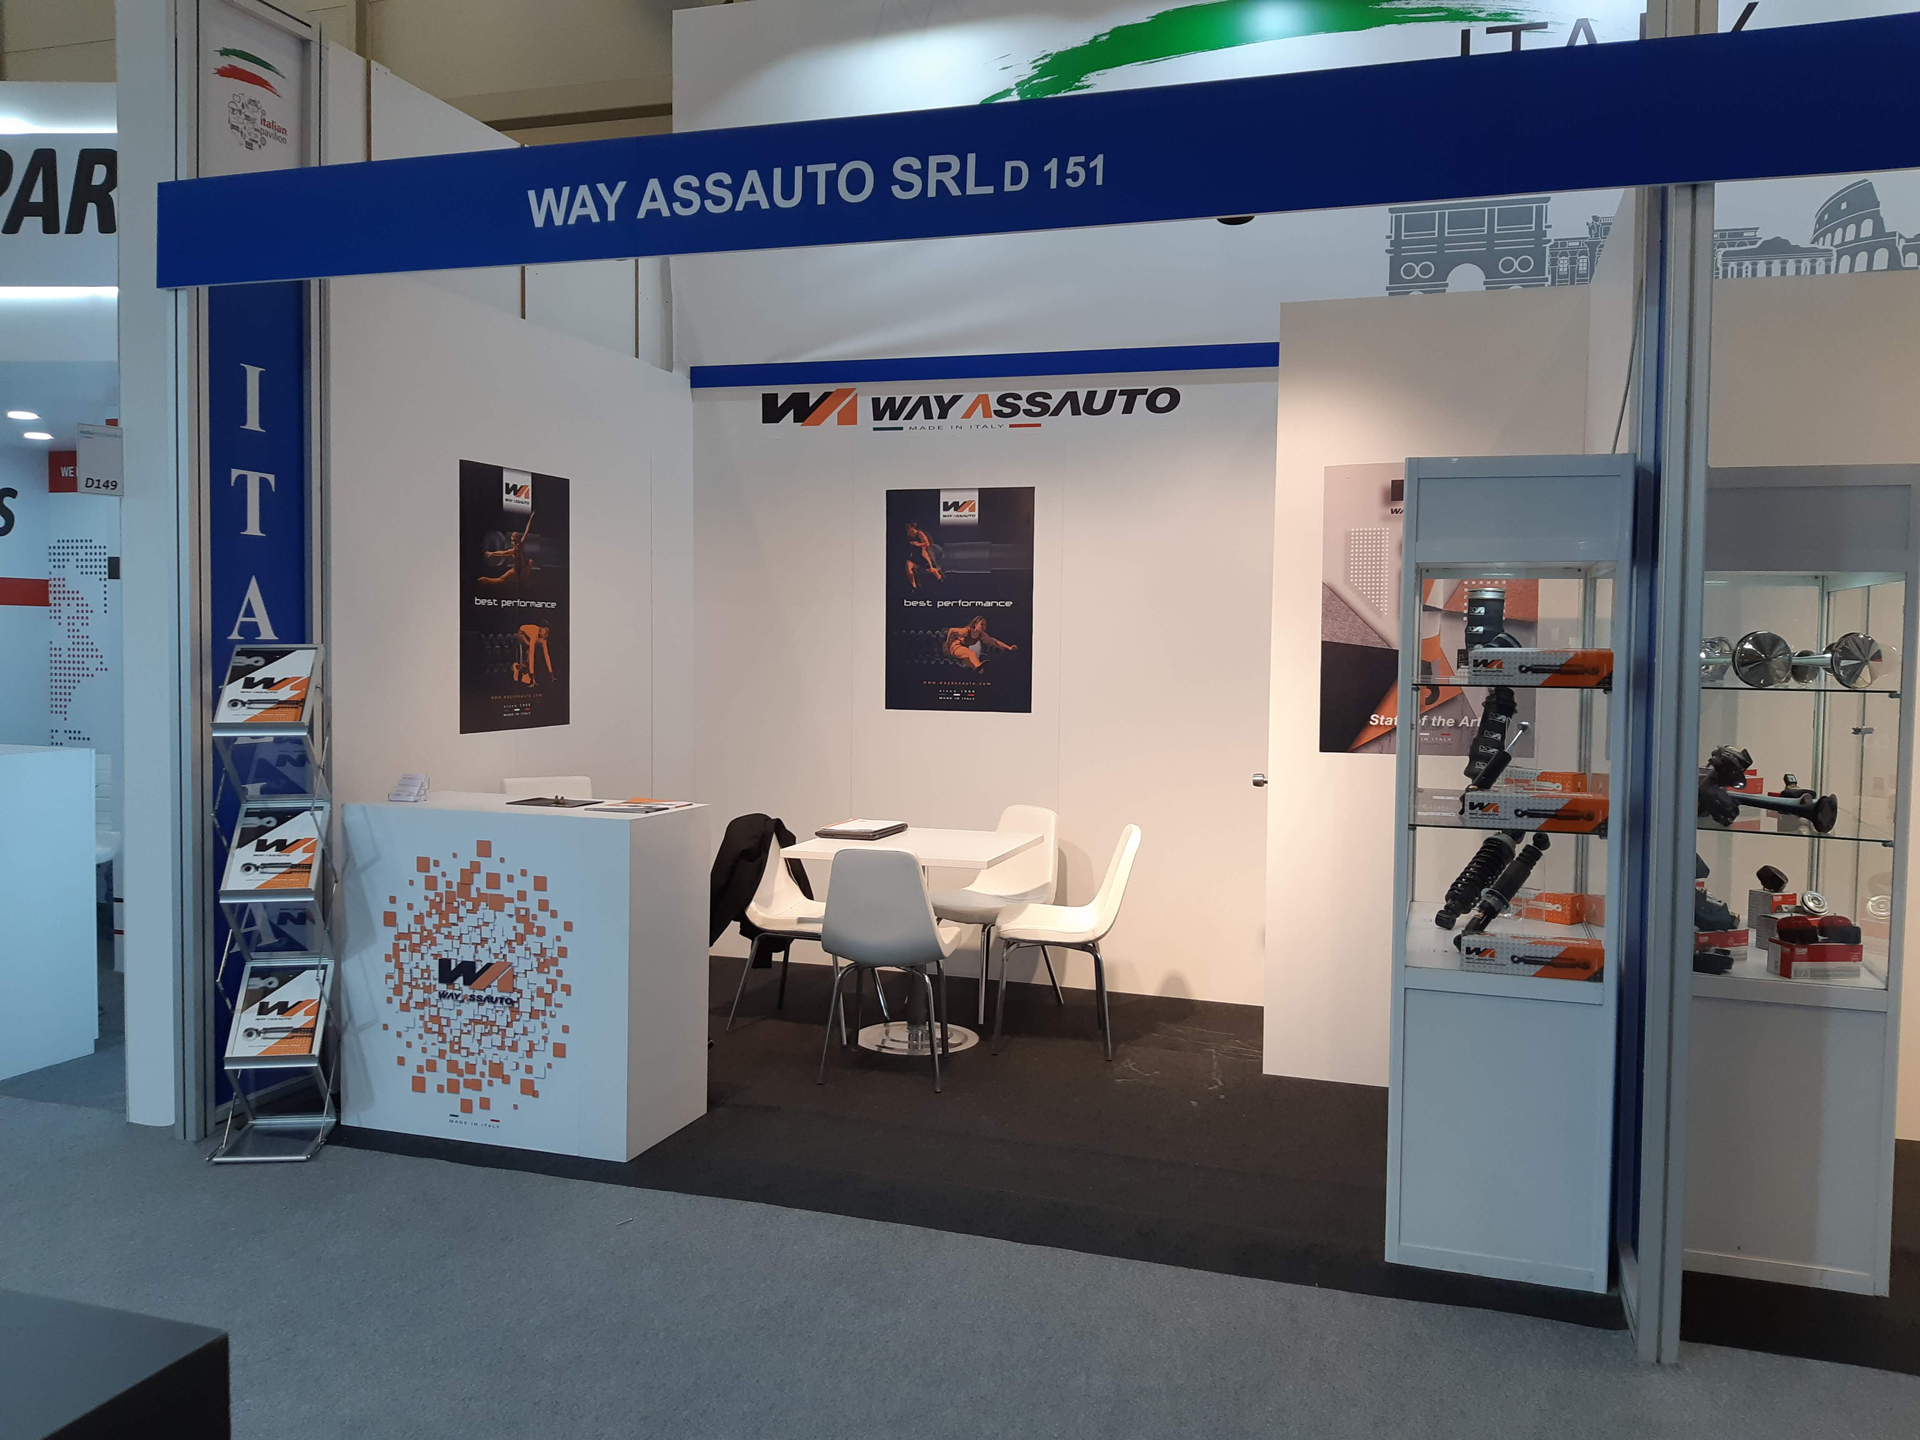 Automechanika-instanbul-2019-way-assauto-2